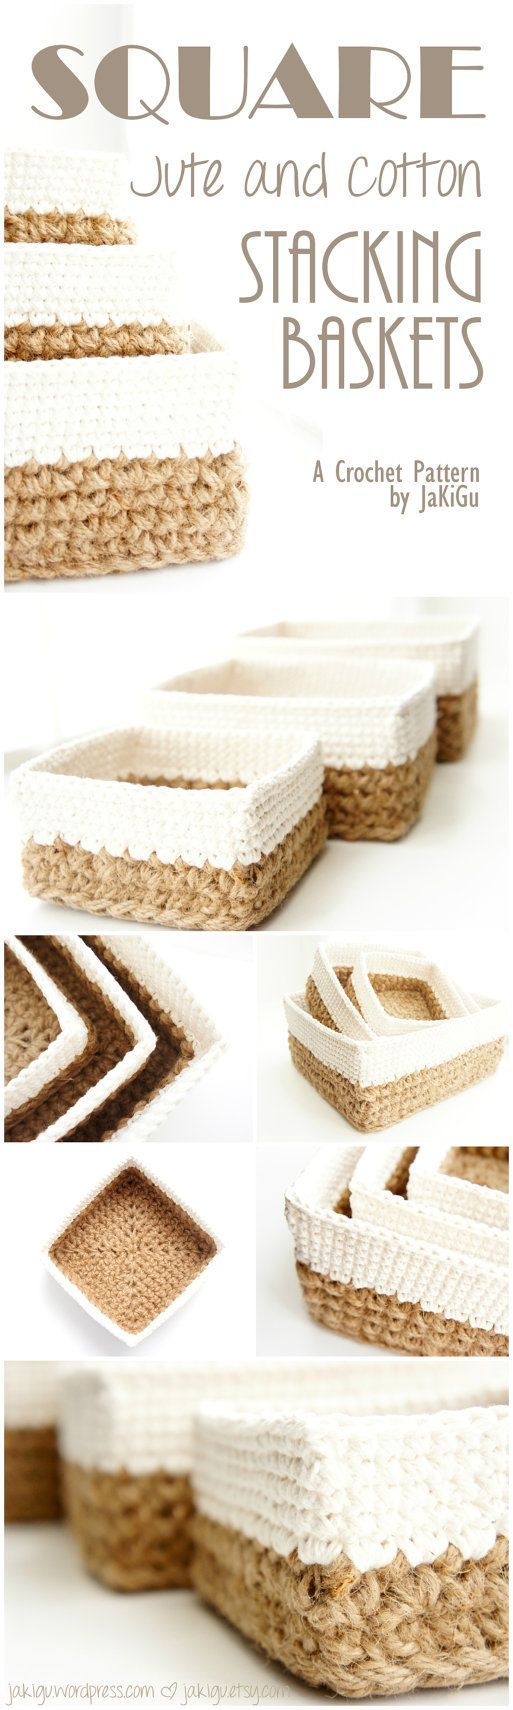 37.5% OFF Crochet Pattern Bundle  3 Sets of 3 Stacking